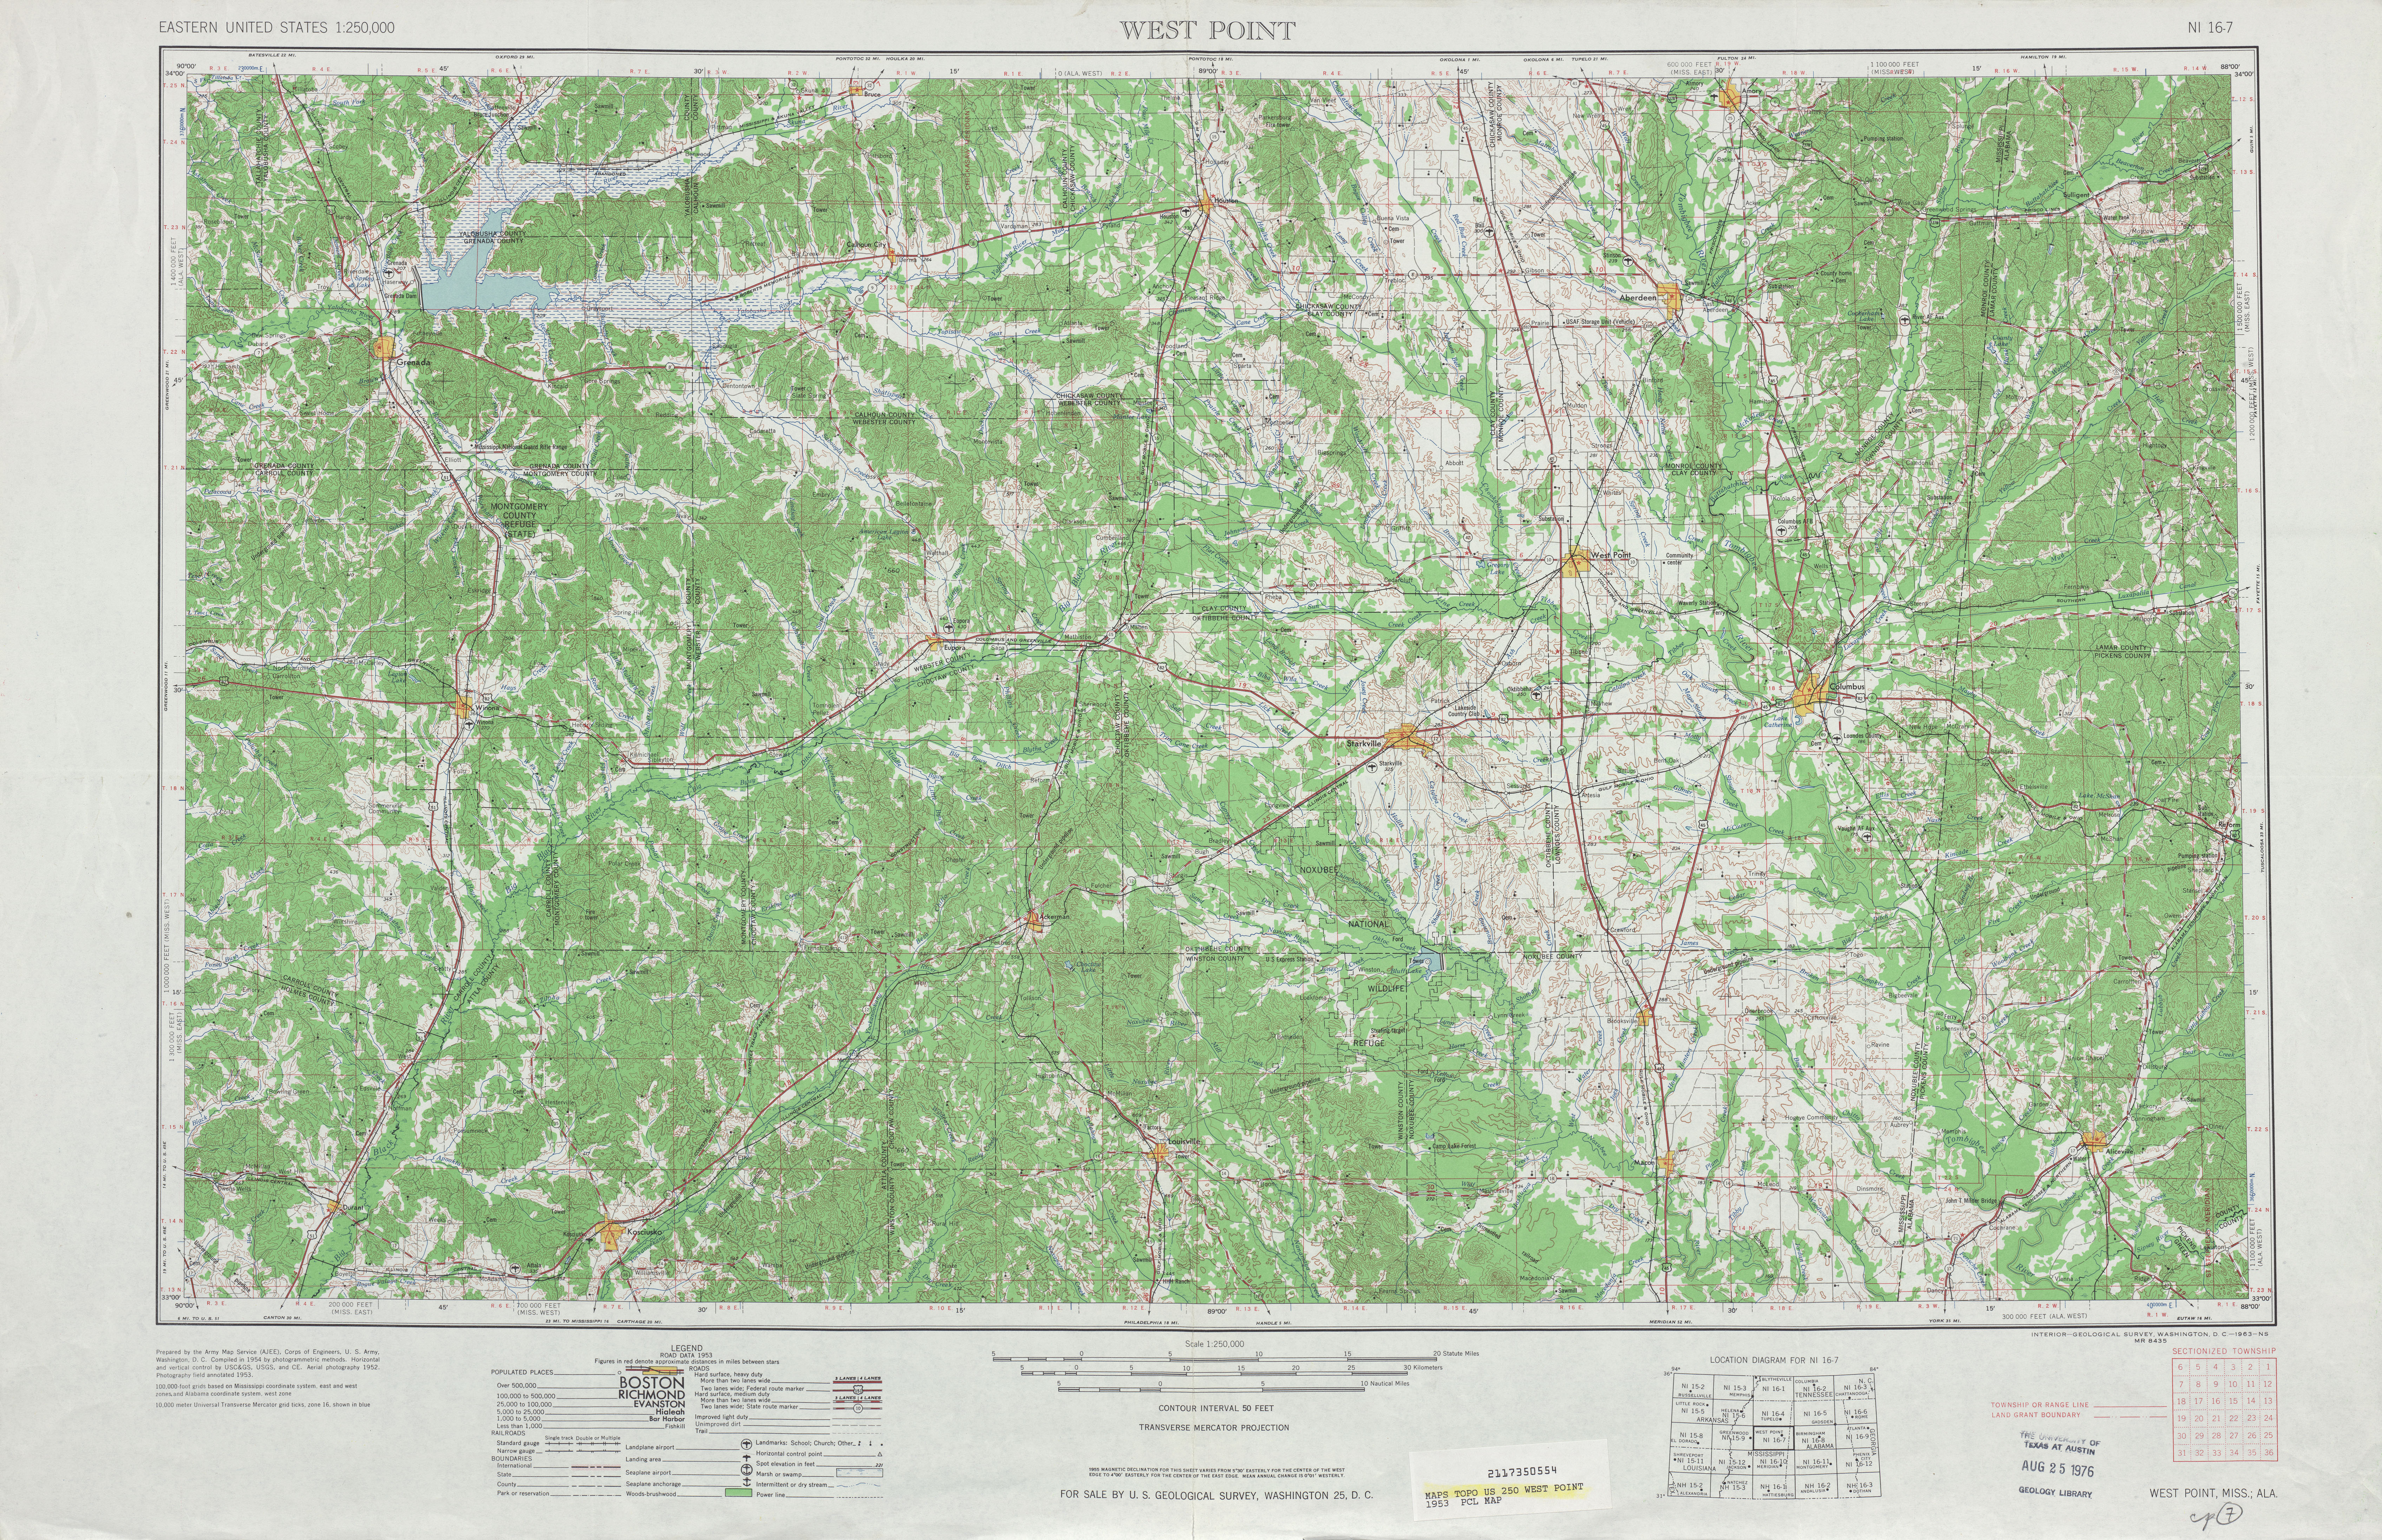 Hoja West Point del Mapa Topográfico de los Estados Unidos 1953